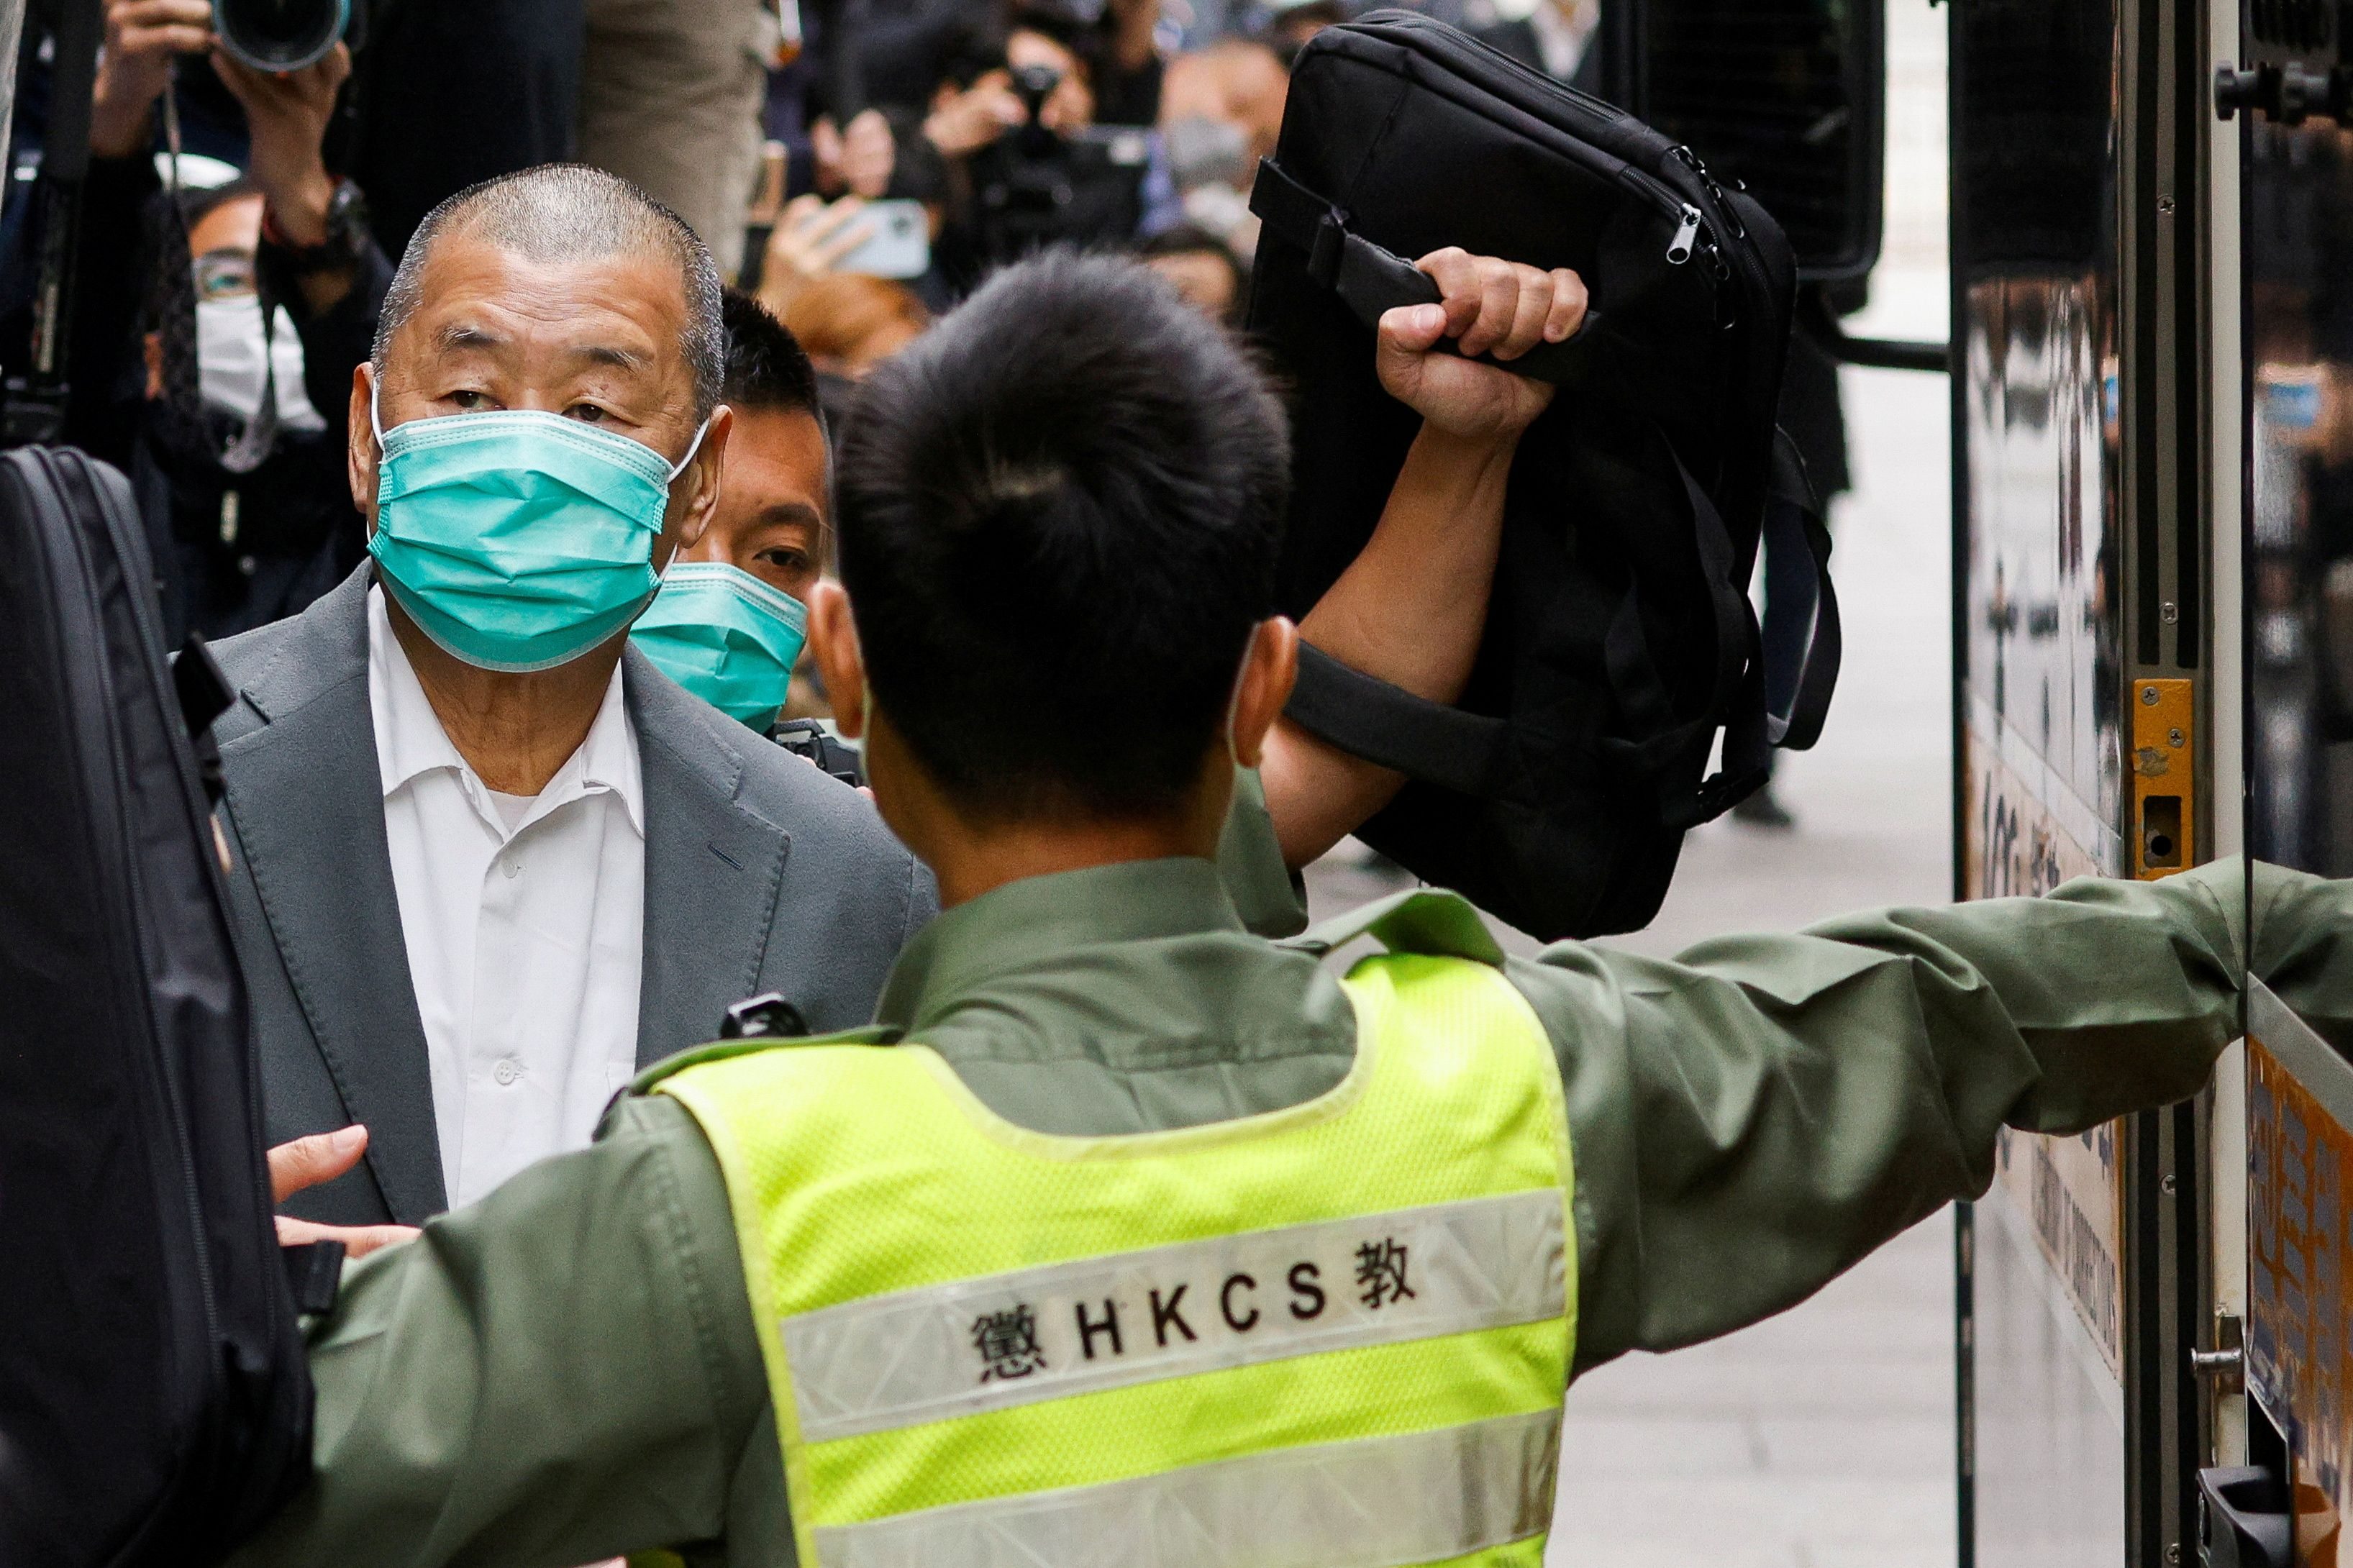 Media mogul Jimmy Lai, founder of Apple Daily, leaves the Court of Final Appeal by prison van in Hong Kong, China February 9, 2021. REUTERS/Tyrone Siu/File Photo